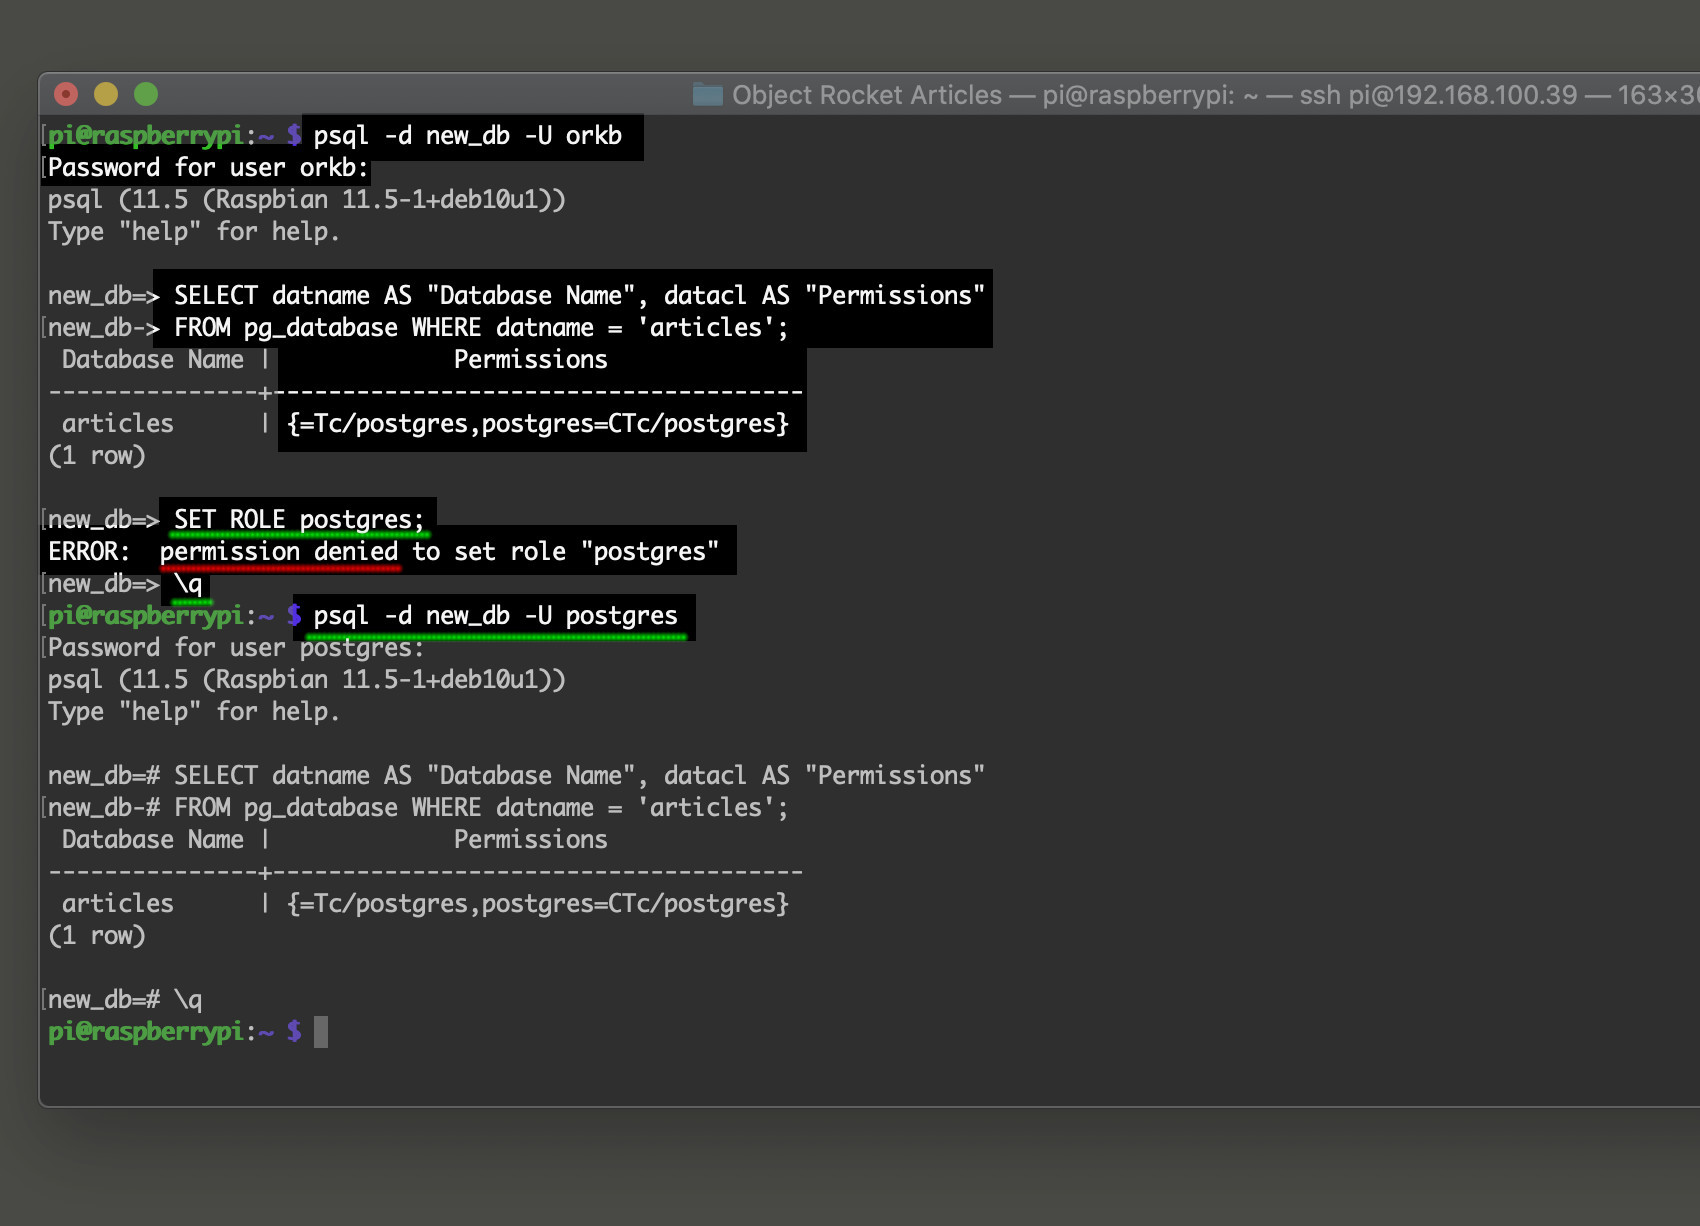 Screenshot of a permission denied error after using psql to select a database for PostgreSQL